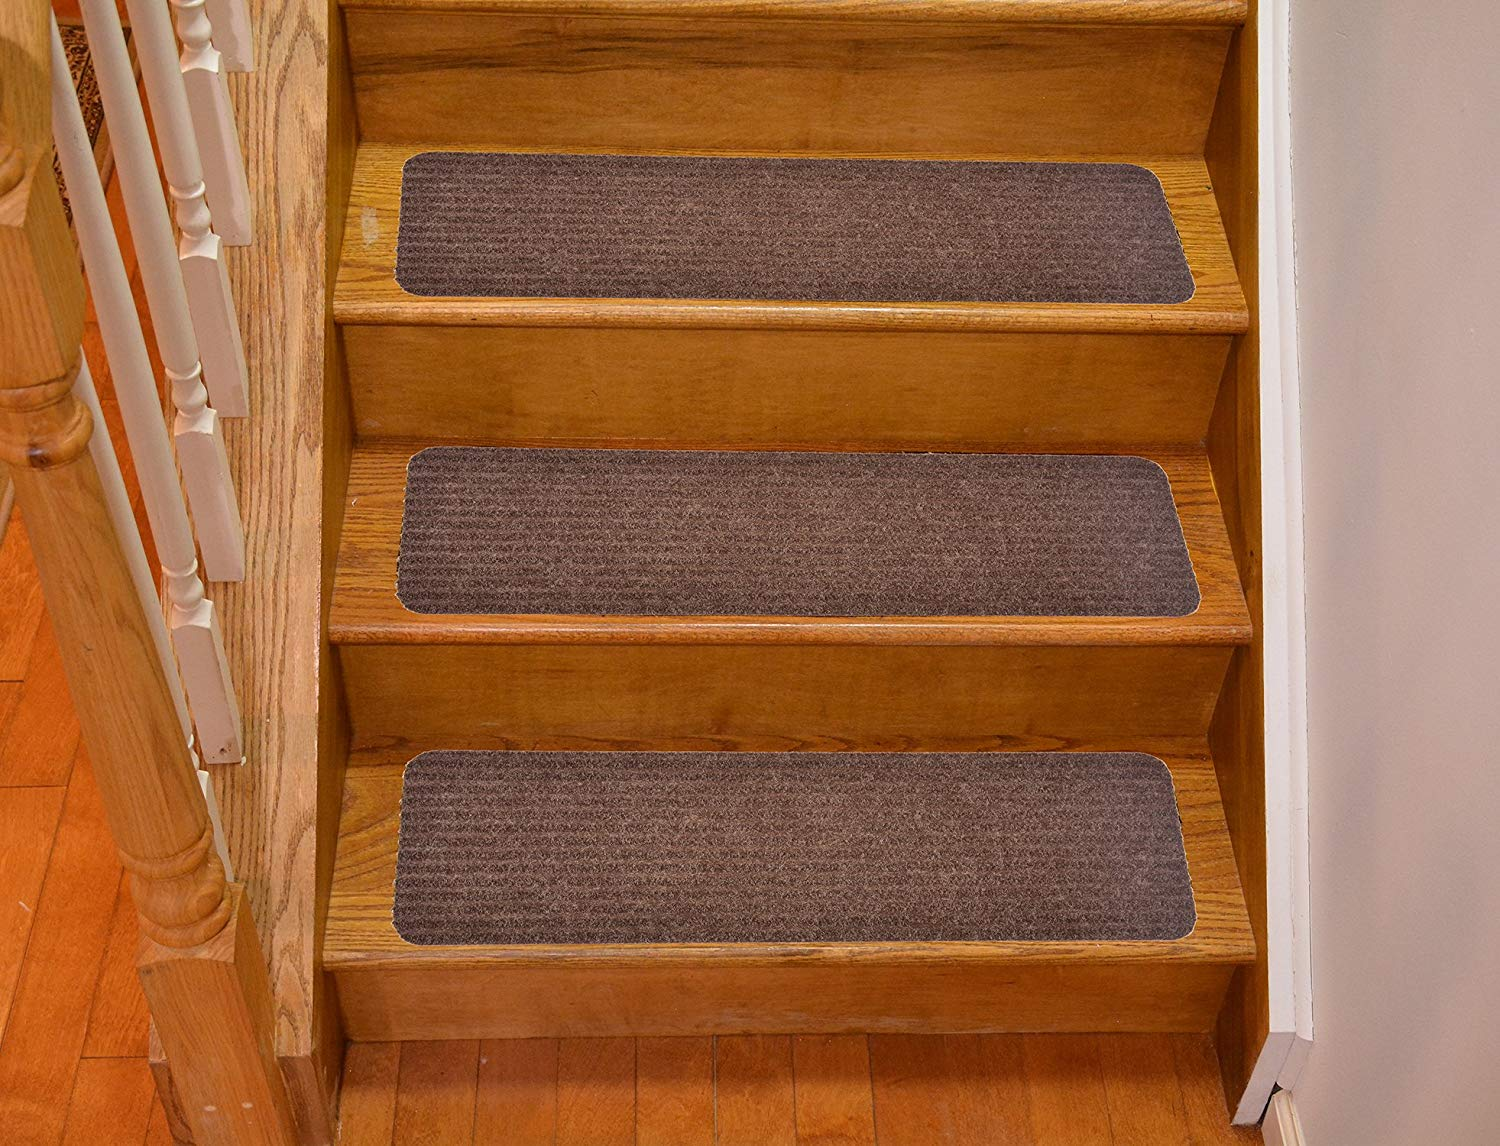 WCHUANG Wood Anchor Stair Treads Non-Slip Carpet Green Rectangle Stair Rugs Pads Indoor Outdoor Rubber Mats for Staircase Set of 5